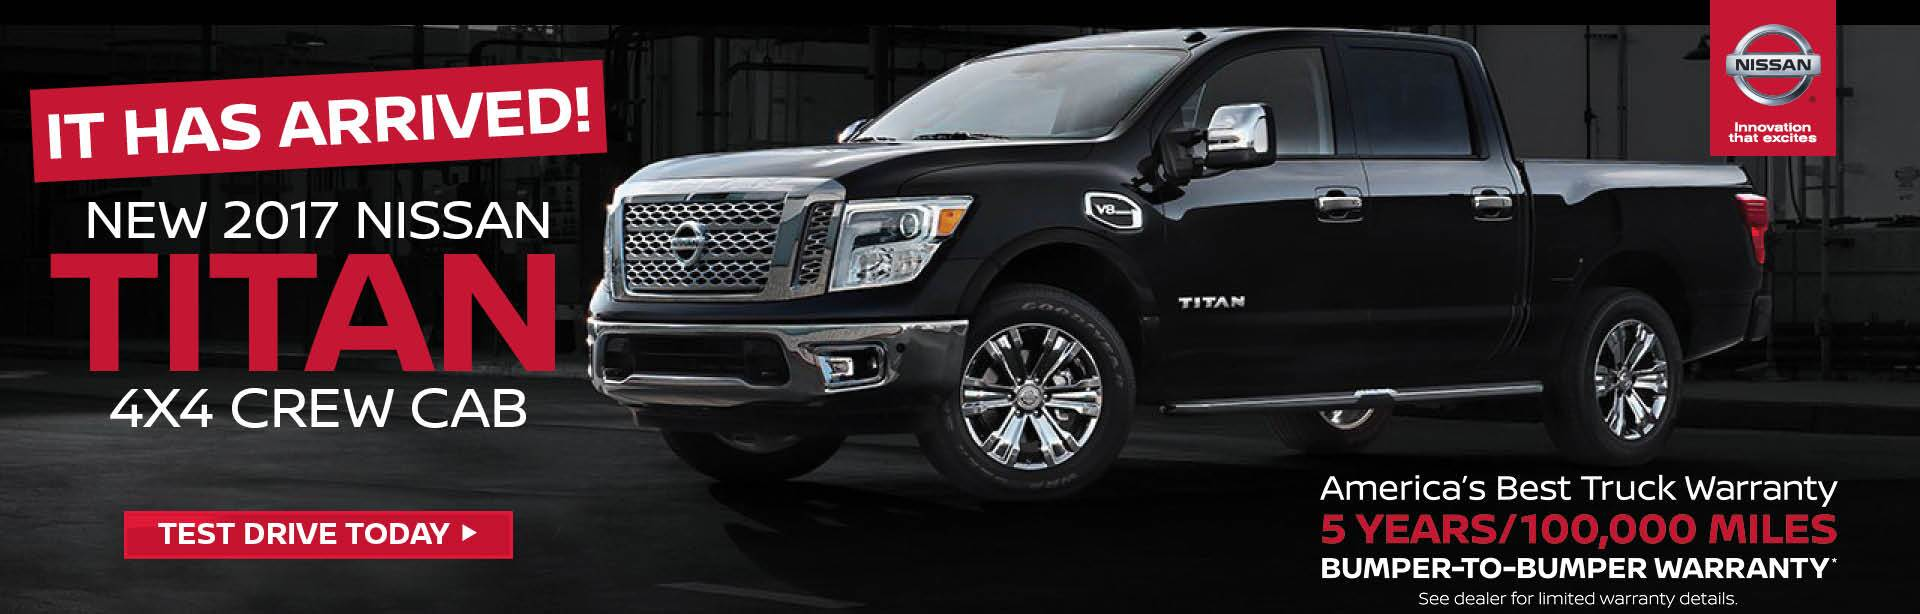 2017 Nissan Titan Arrived